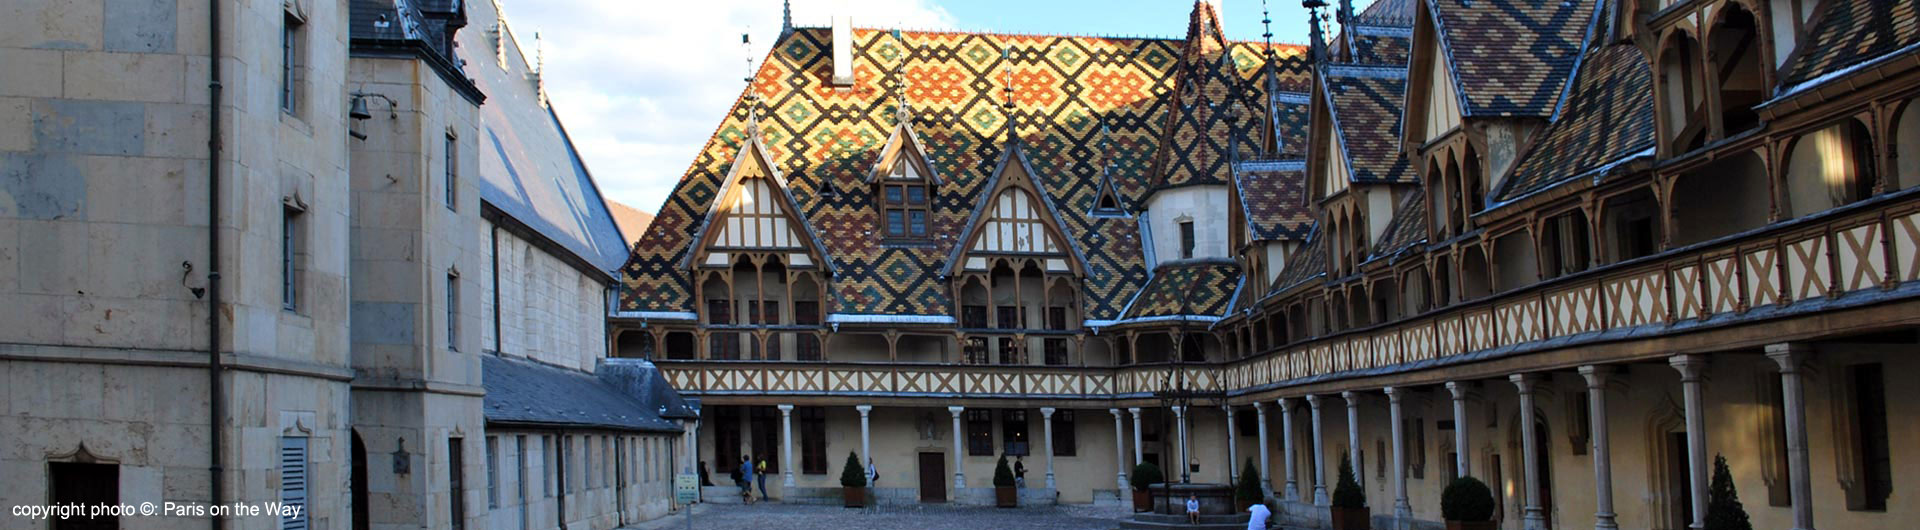 HOSPICES DE BEAUNE A CHARITY HOSPITAL